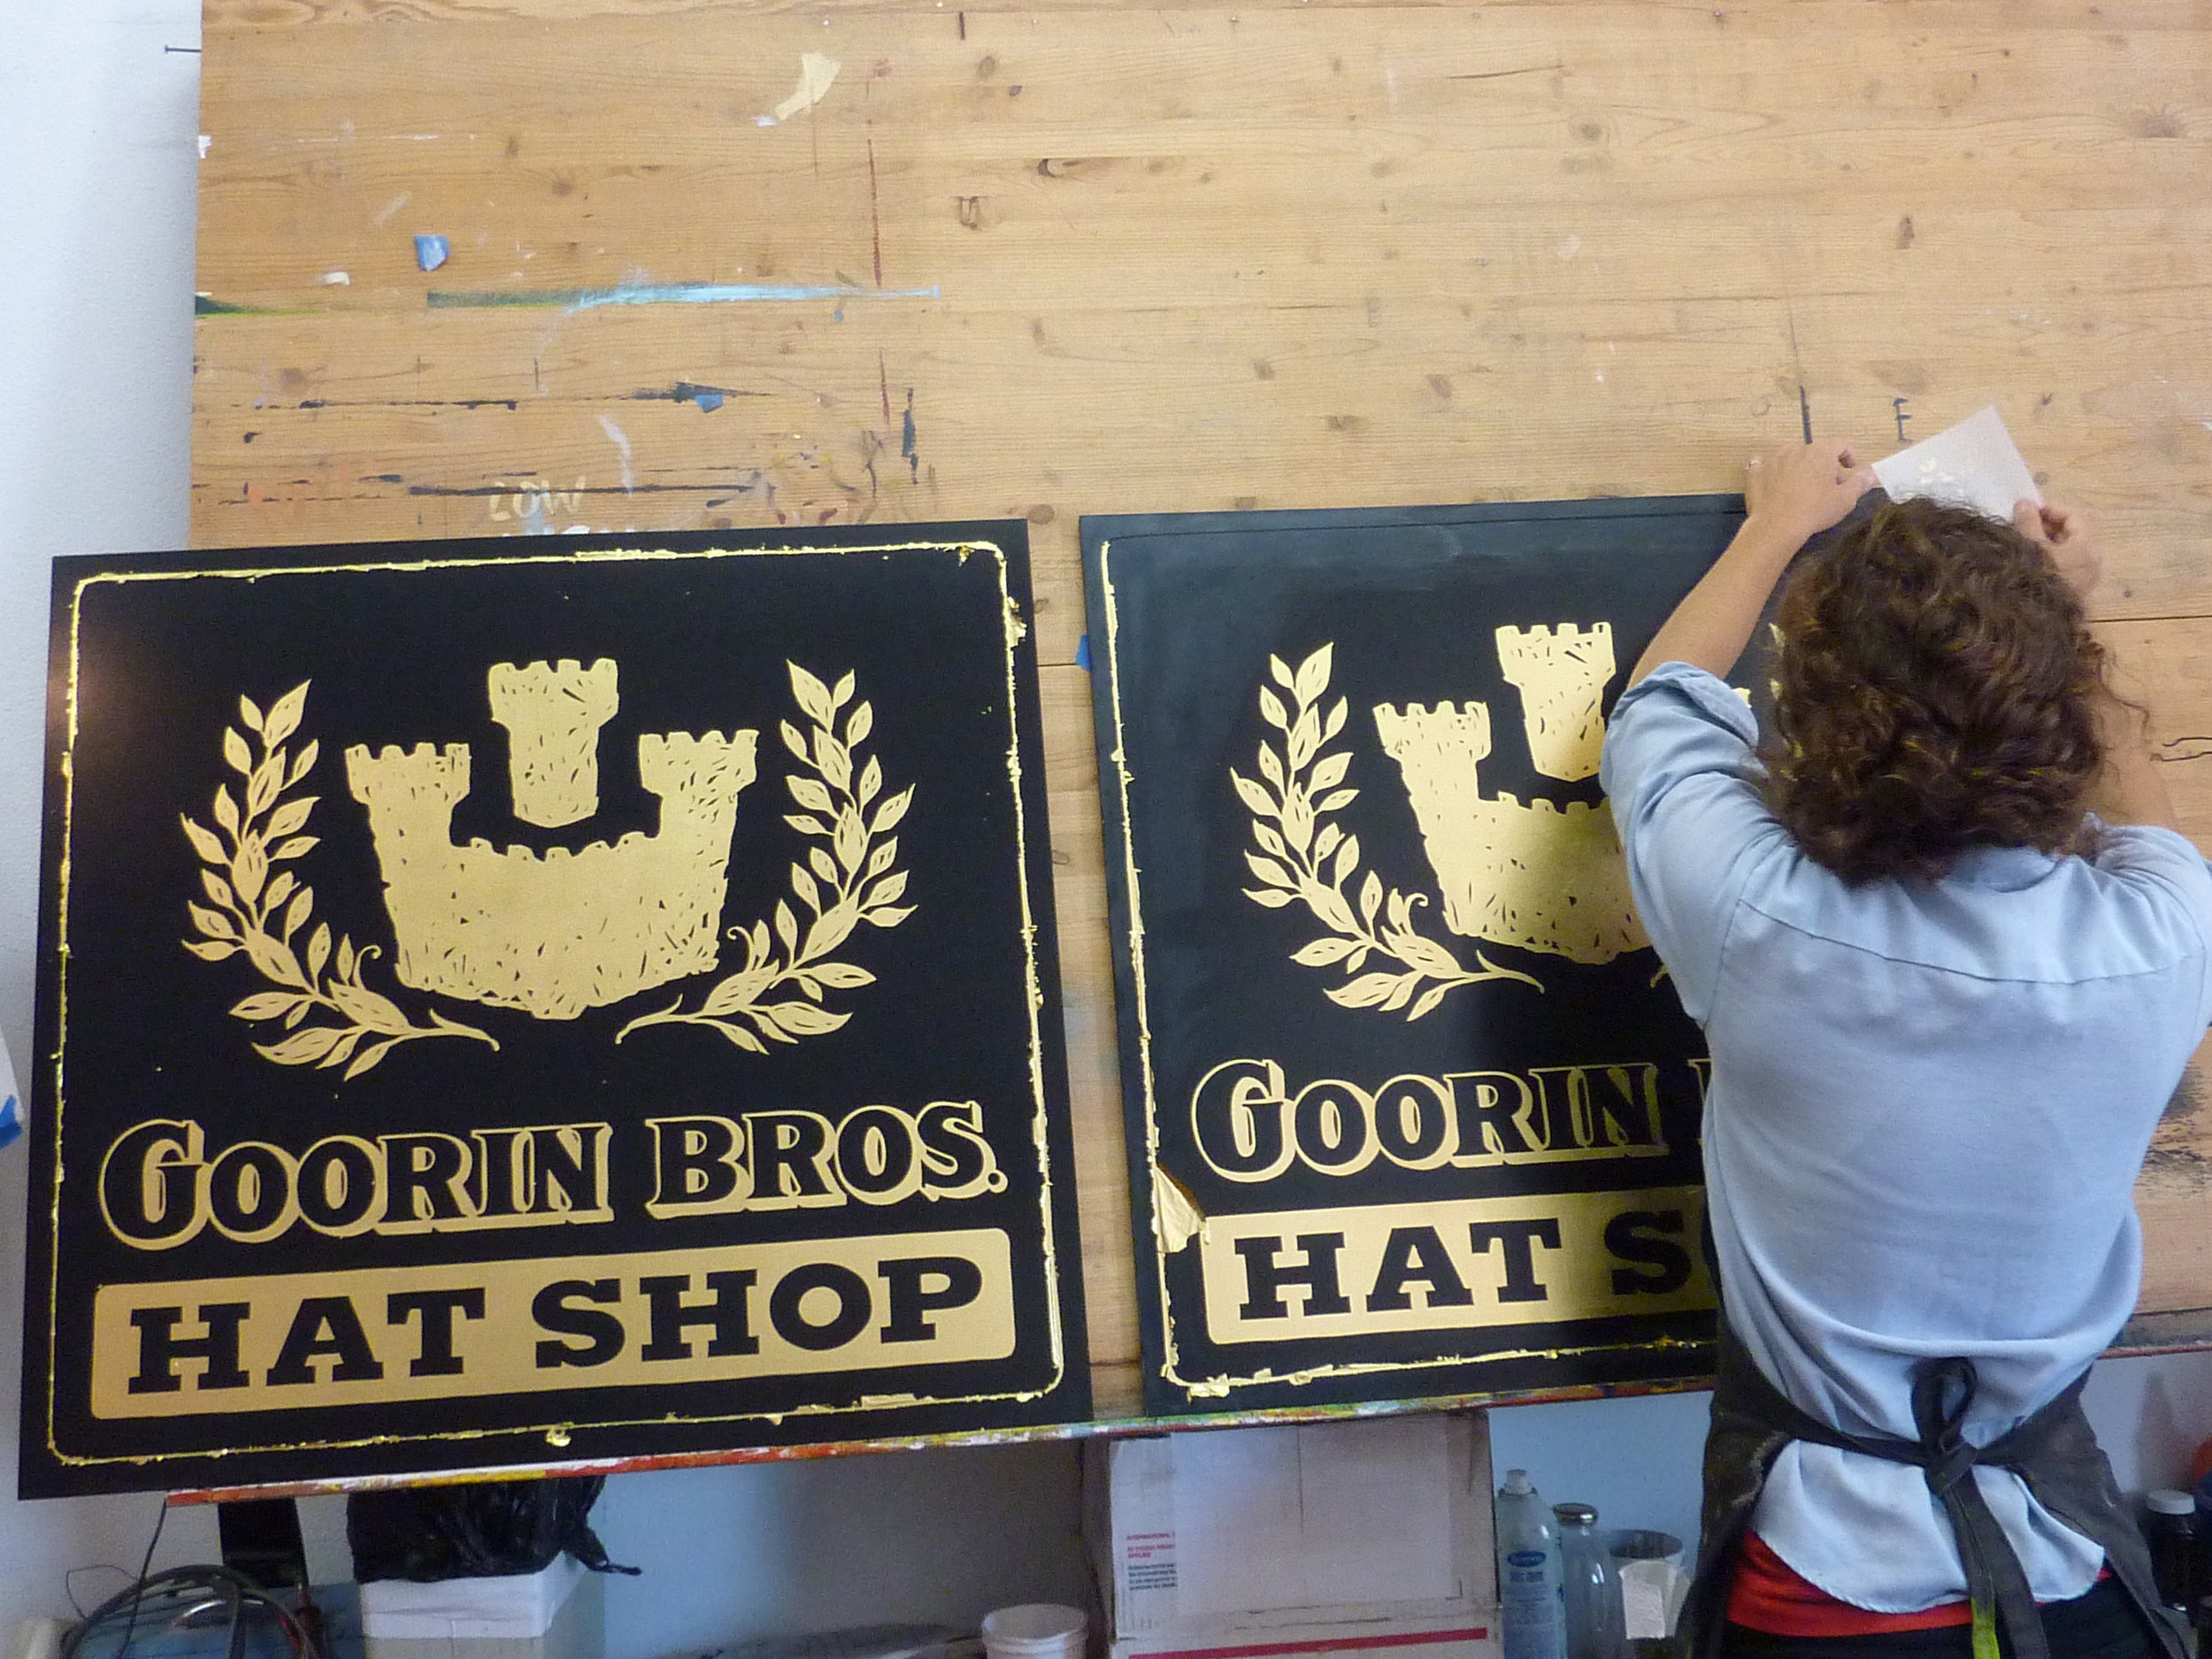 HAND-goorin-bros-hat-shop-in-progress_6057425174_o.jpg